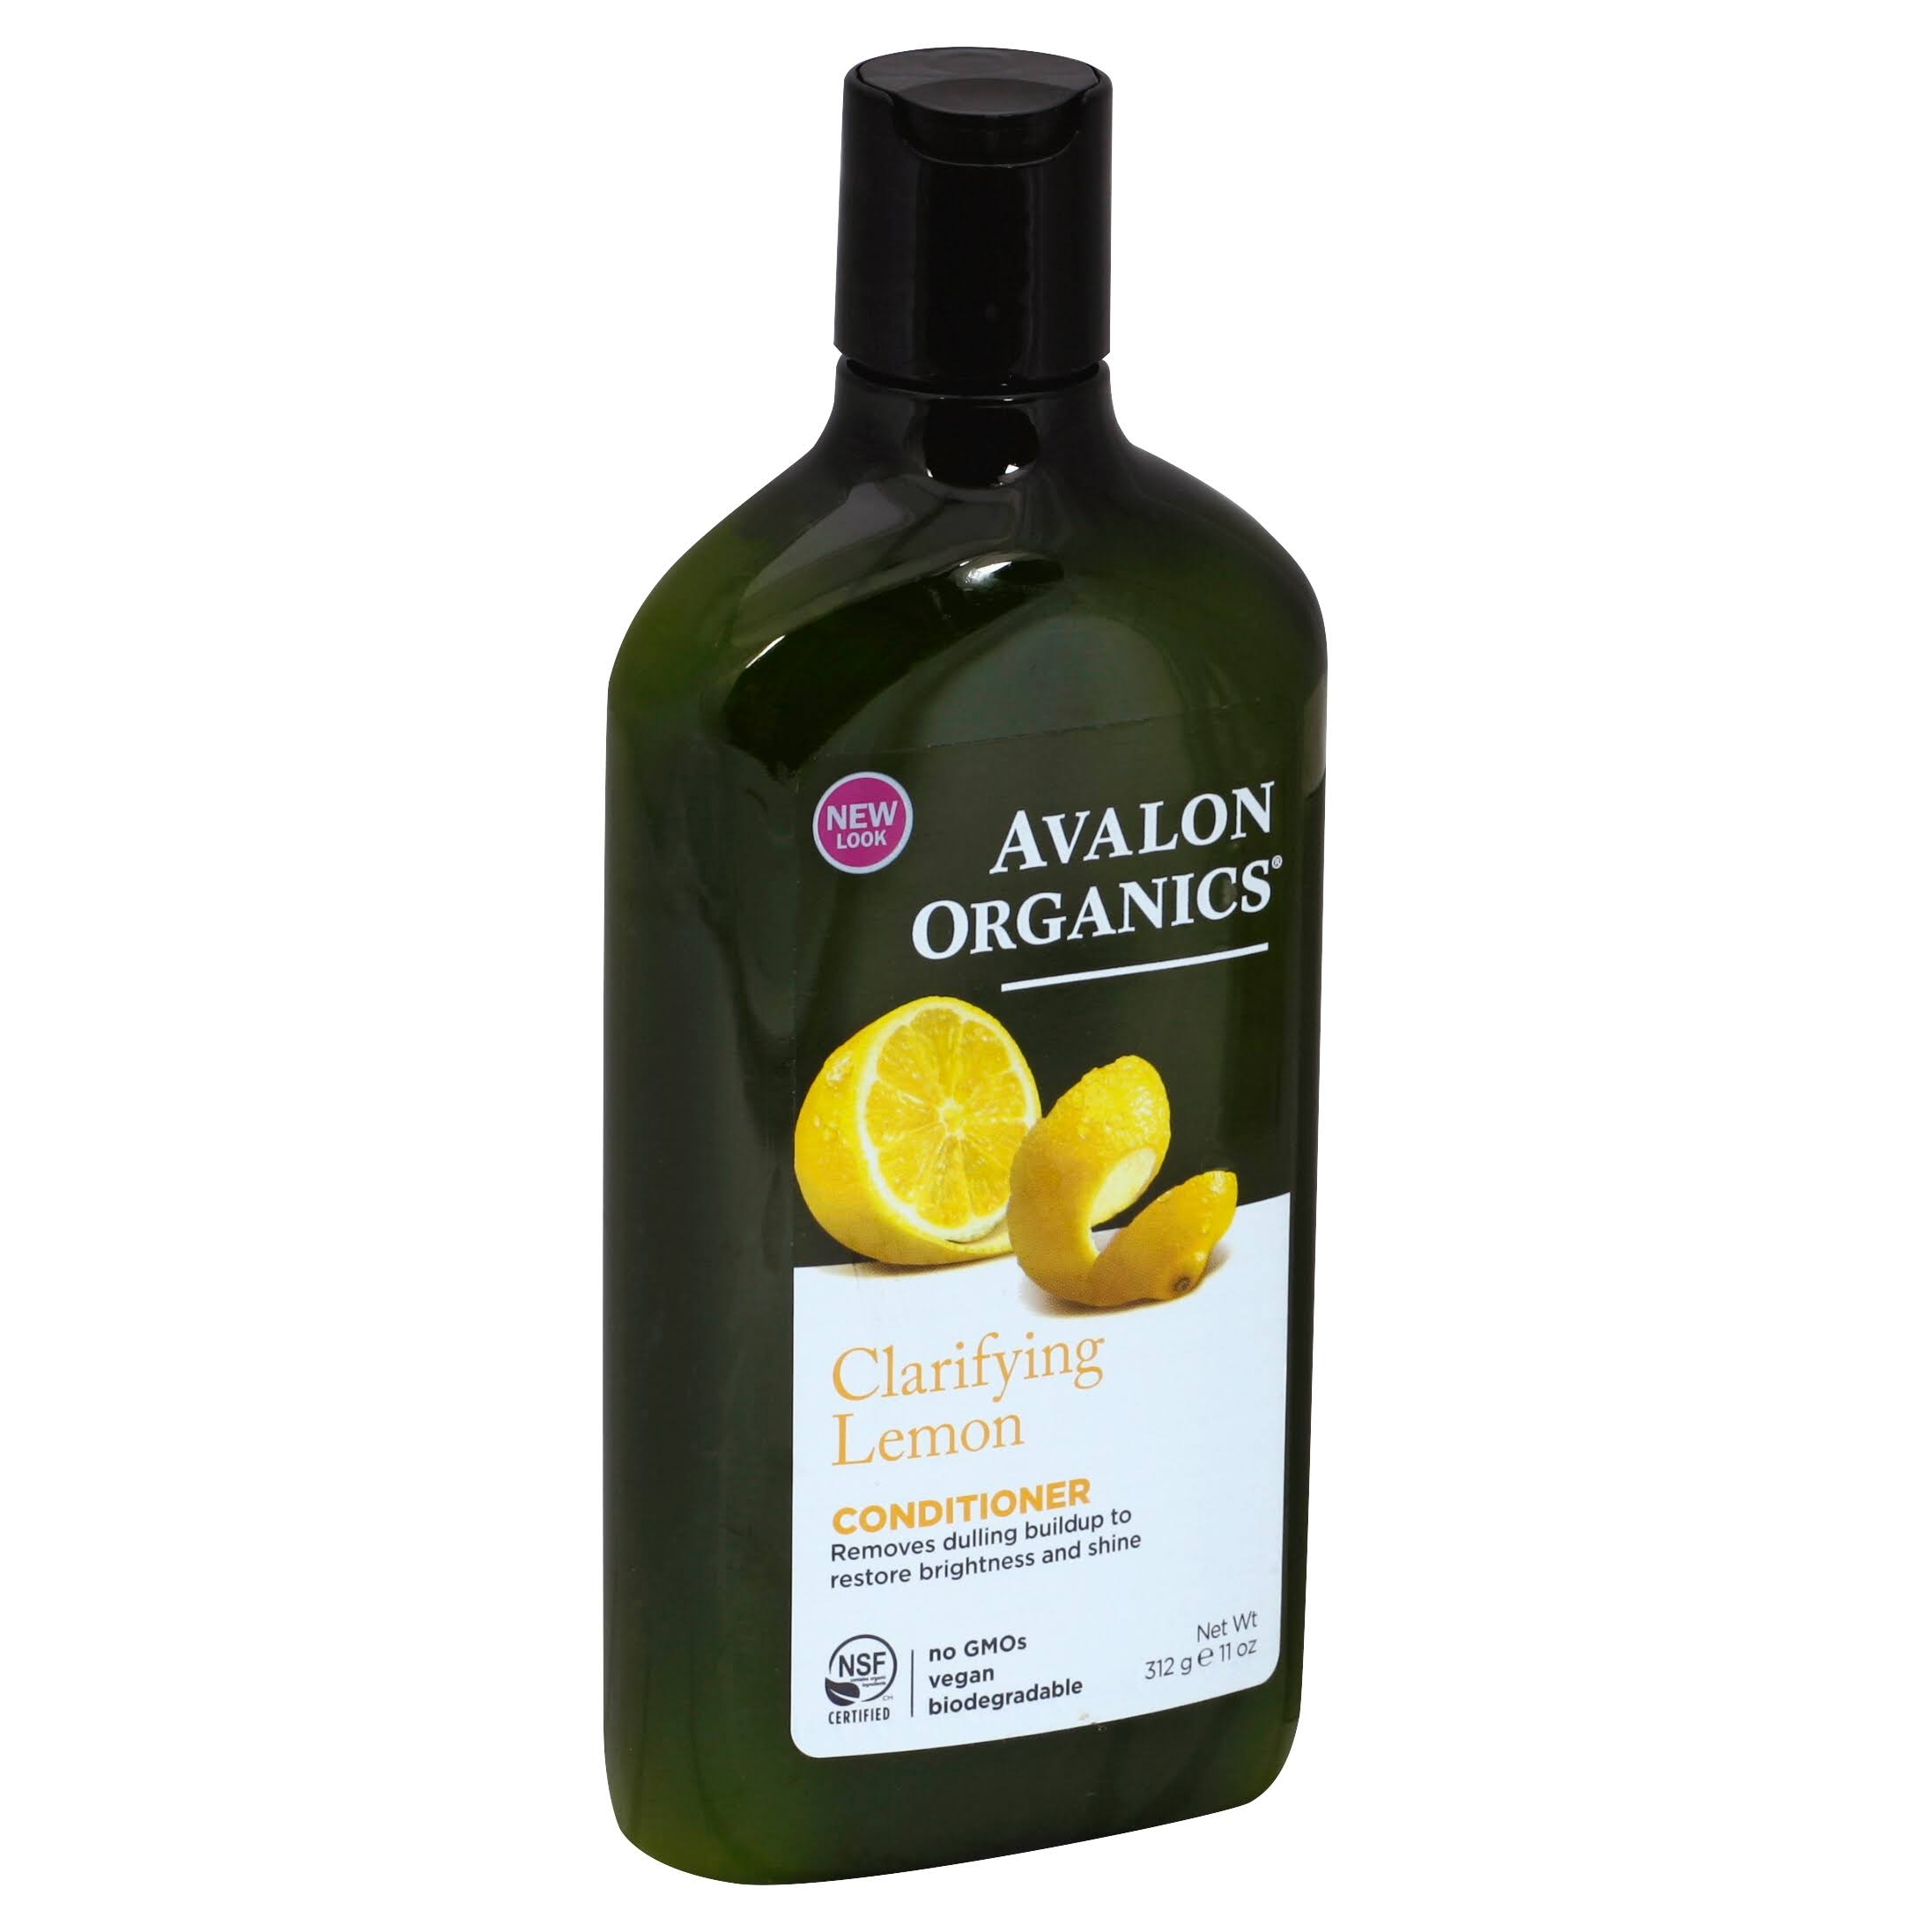 Avalon Organics Clarifying Conditioner, Lemon - 11 fl oz bottle